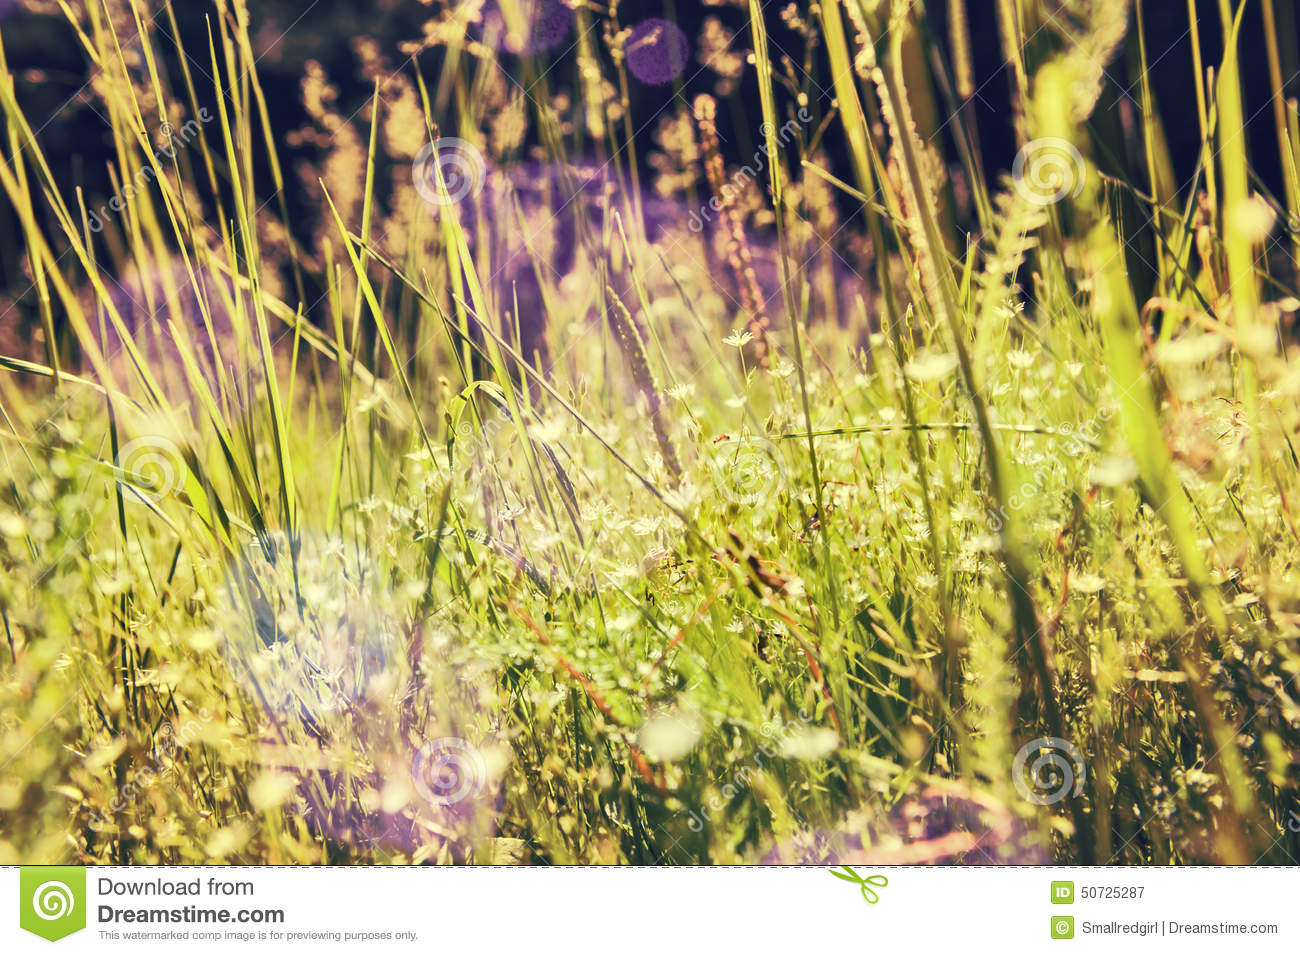 Vintage Photo Of Grass: Green Grass And Little White Flowers On The Field Stock